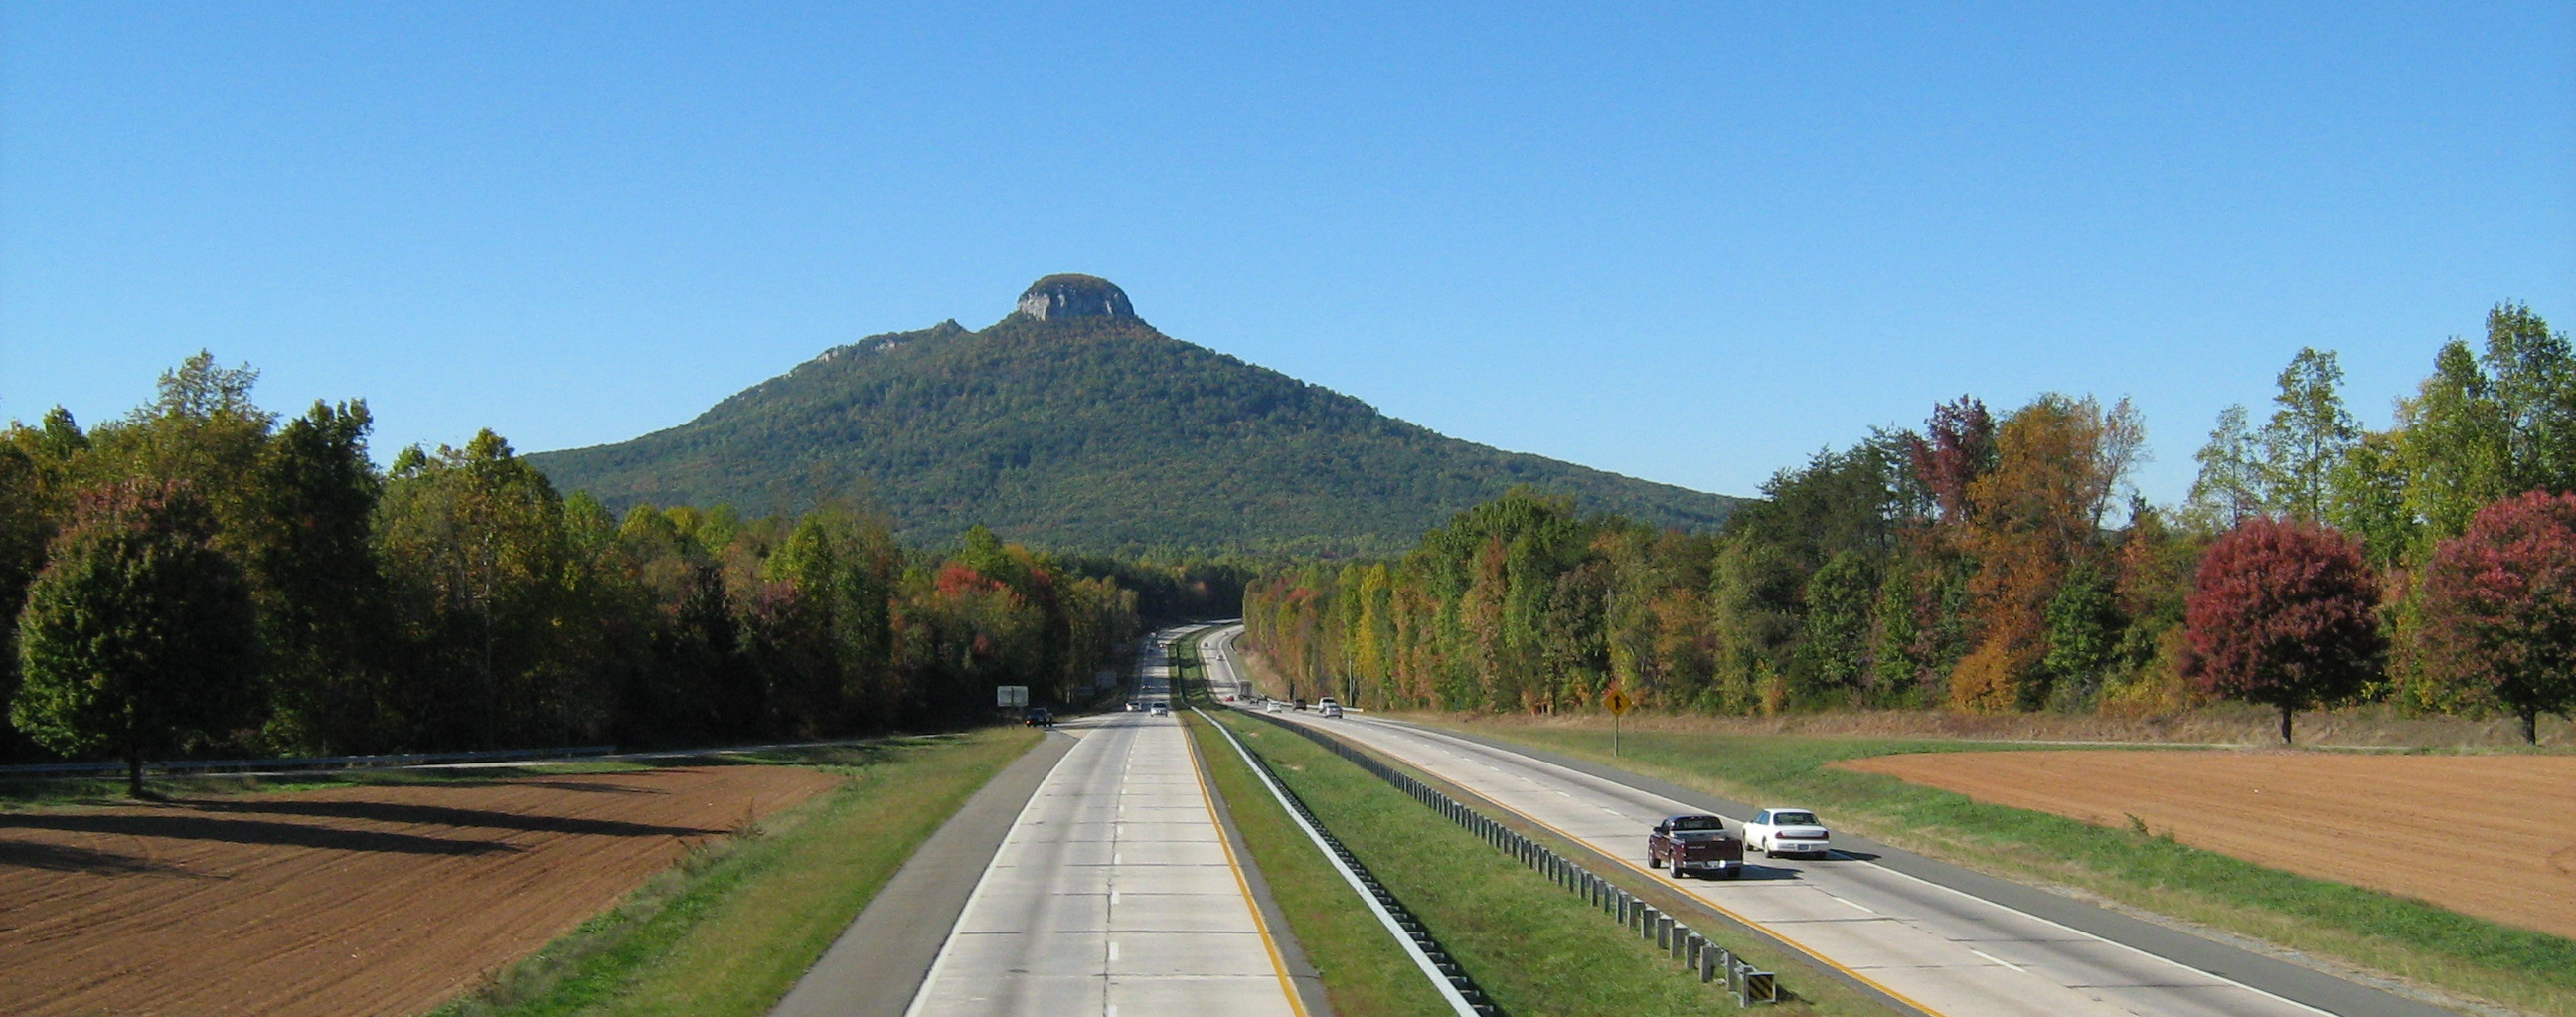 File pilot mountain us 52 in nc 071102 jpg wikimedia commons for 52 time table